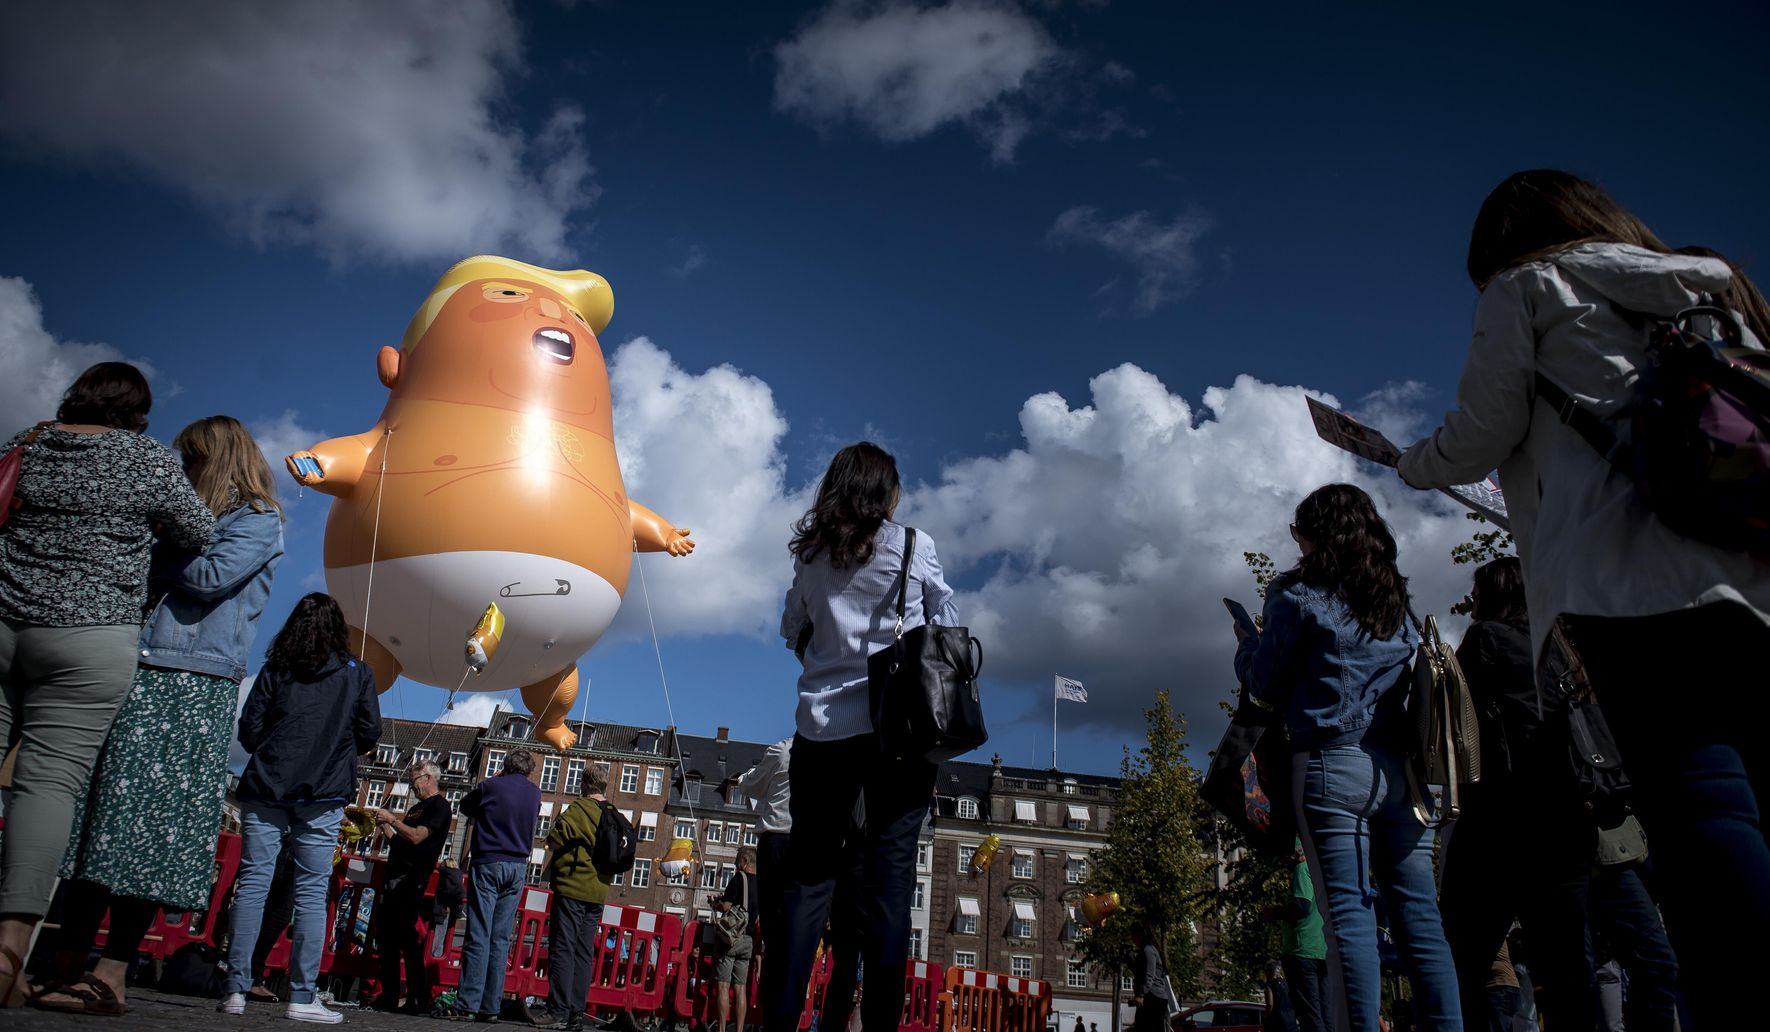 'Baby Trump' flies in Denmark after president cancels visit over Greenland mockery